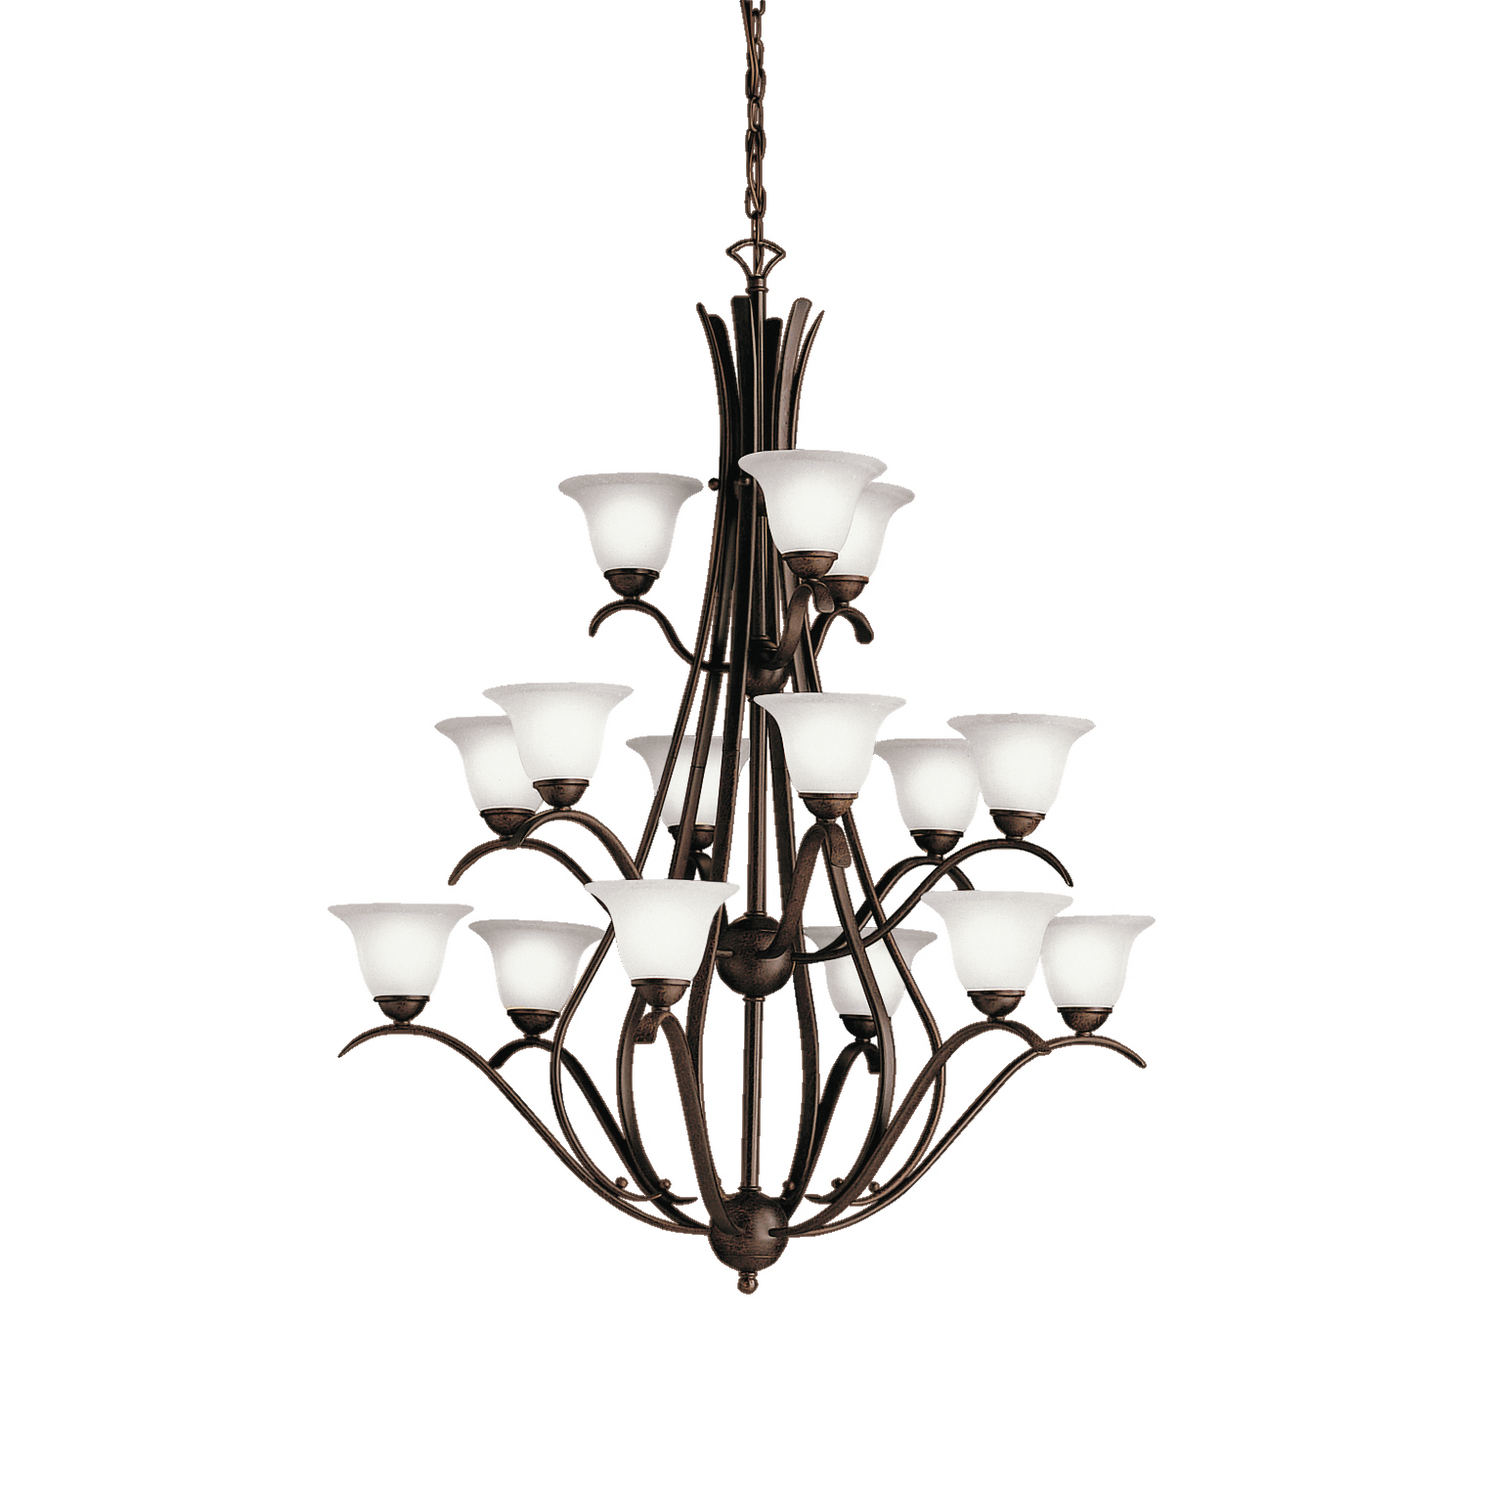 15 Light Chandelier from the Dover collection by Kichler 2523TZ